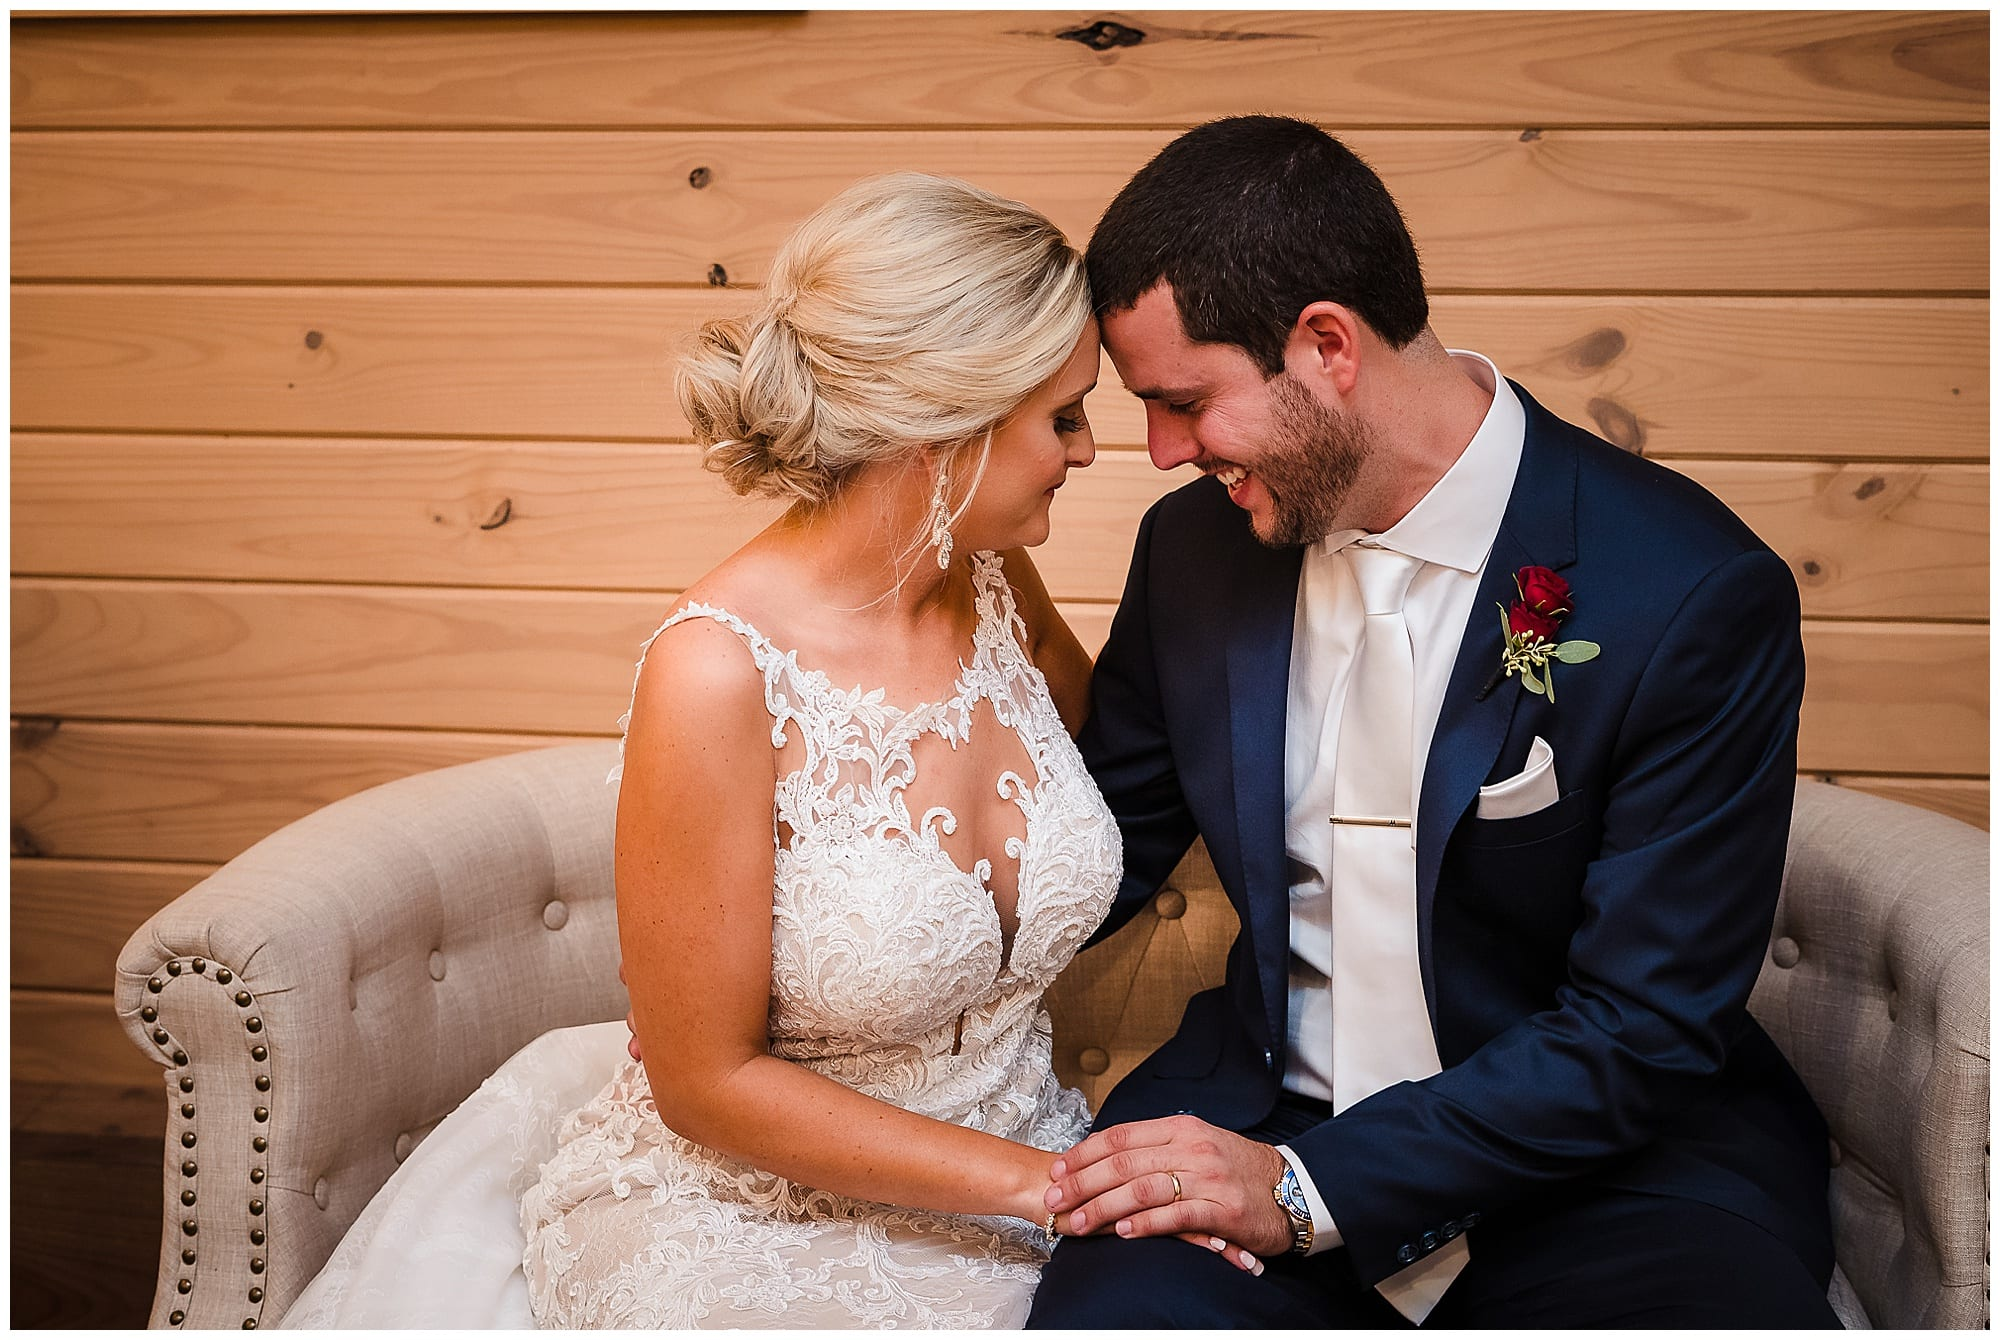 The Sadie Jane Wedding Venue wedding couple touch foreheads